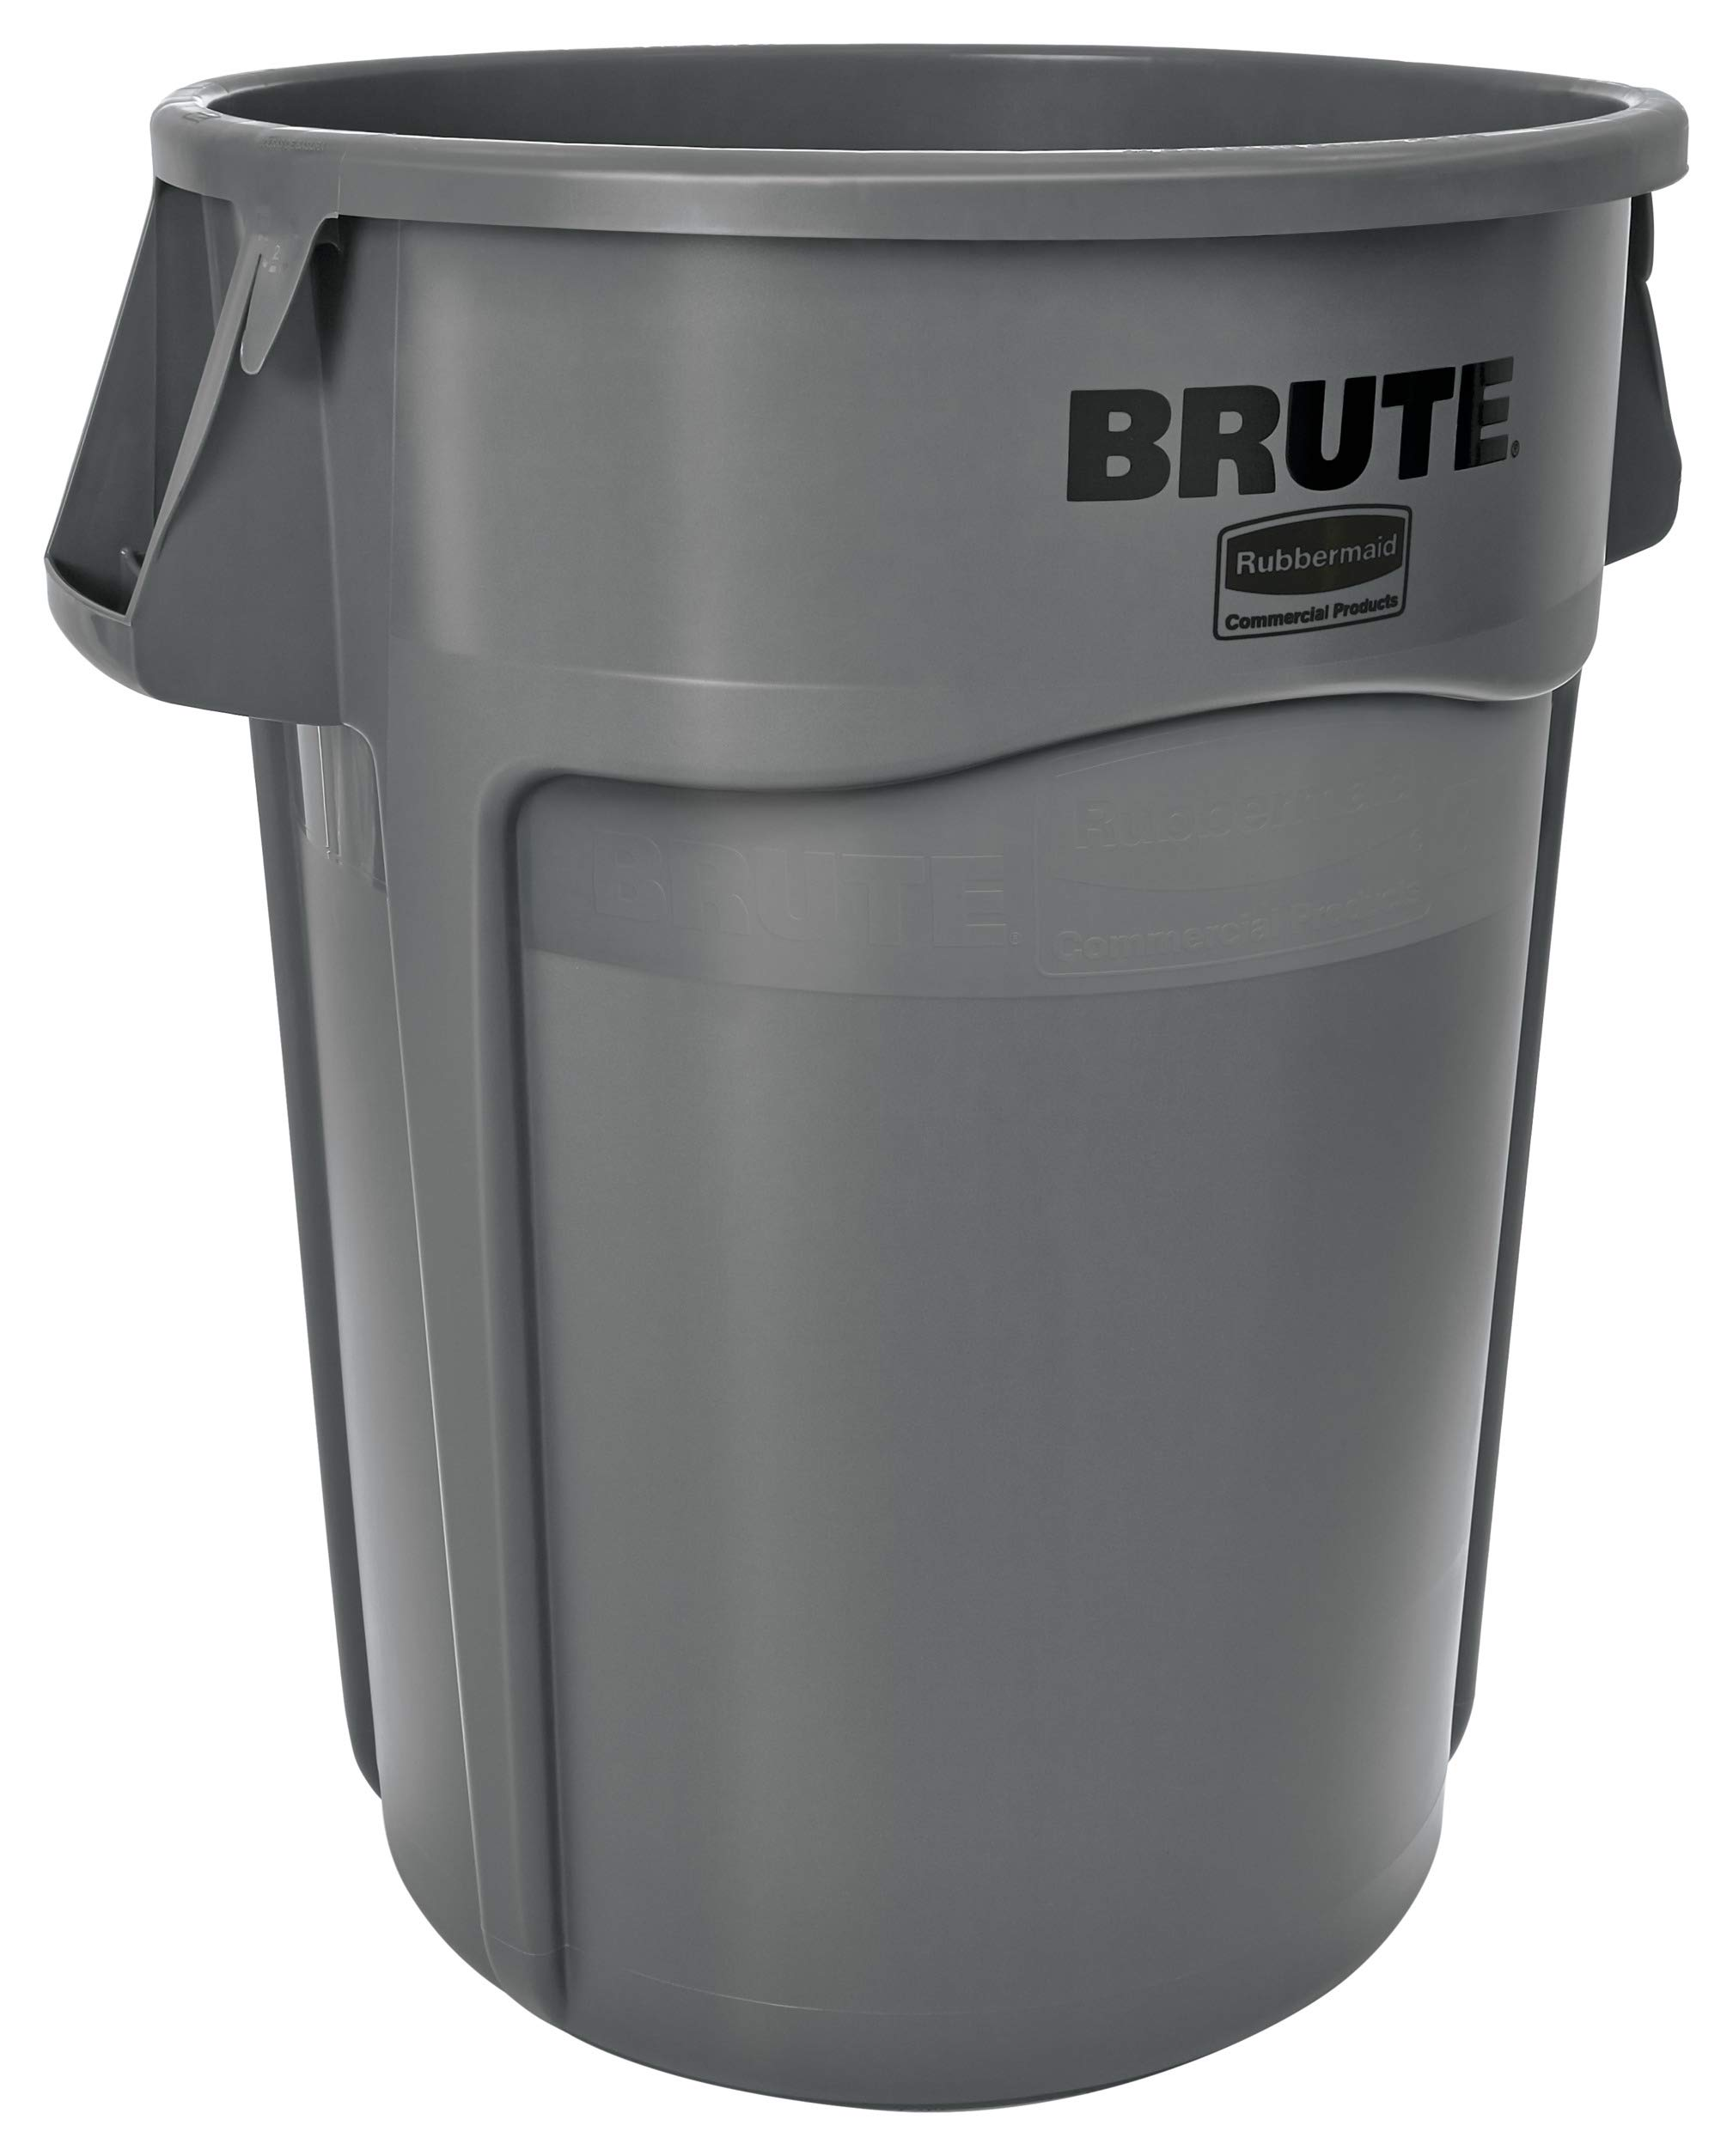 Rubbermaid Commercial Products FG264360GRAY BRUTE Heavy-Duty Round Trash/Garbage Can, 44-Gallon, Gray by Rubbermaid Commercial Products (Image #1)